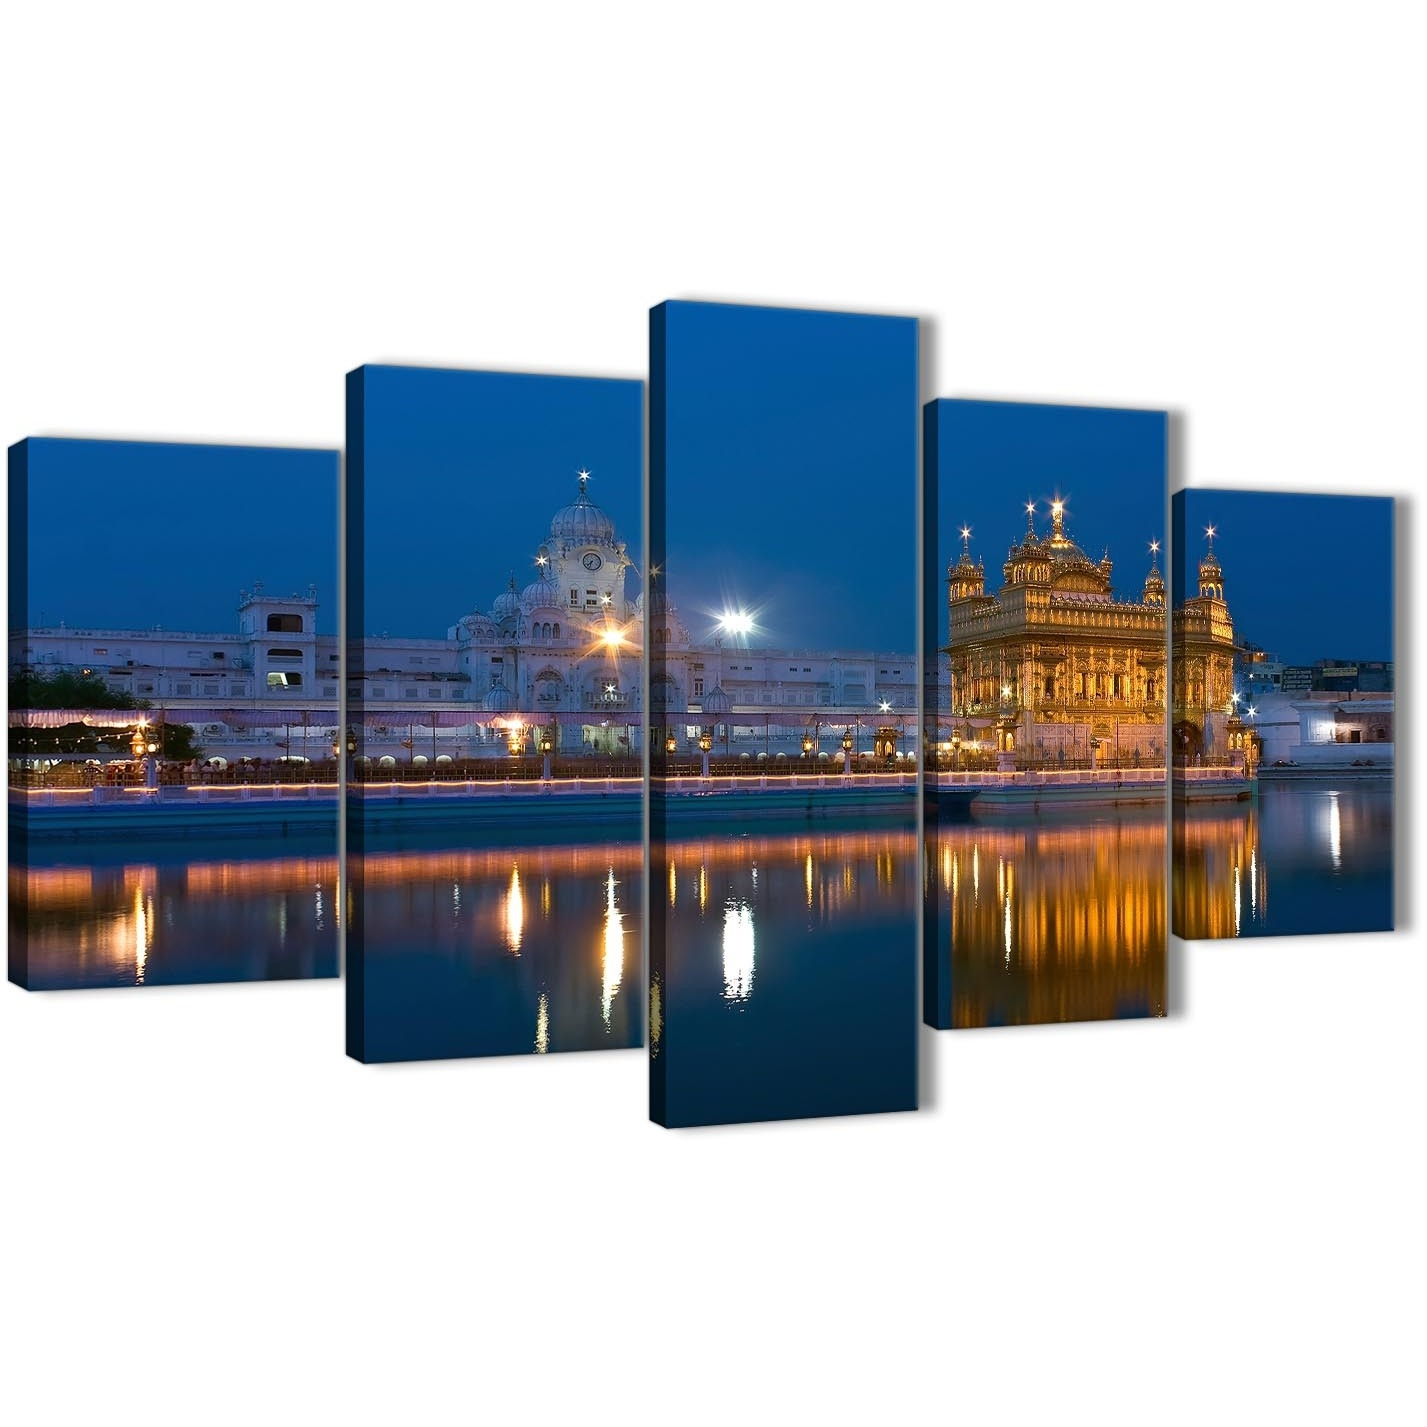 5 Panel Canvas Wall Art Pictures - Sikh Golden Temple Amritsar throughout 5 Piece Canvas Wall Art (Image 2 of 20)